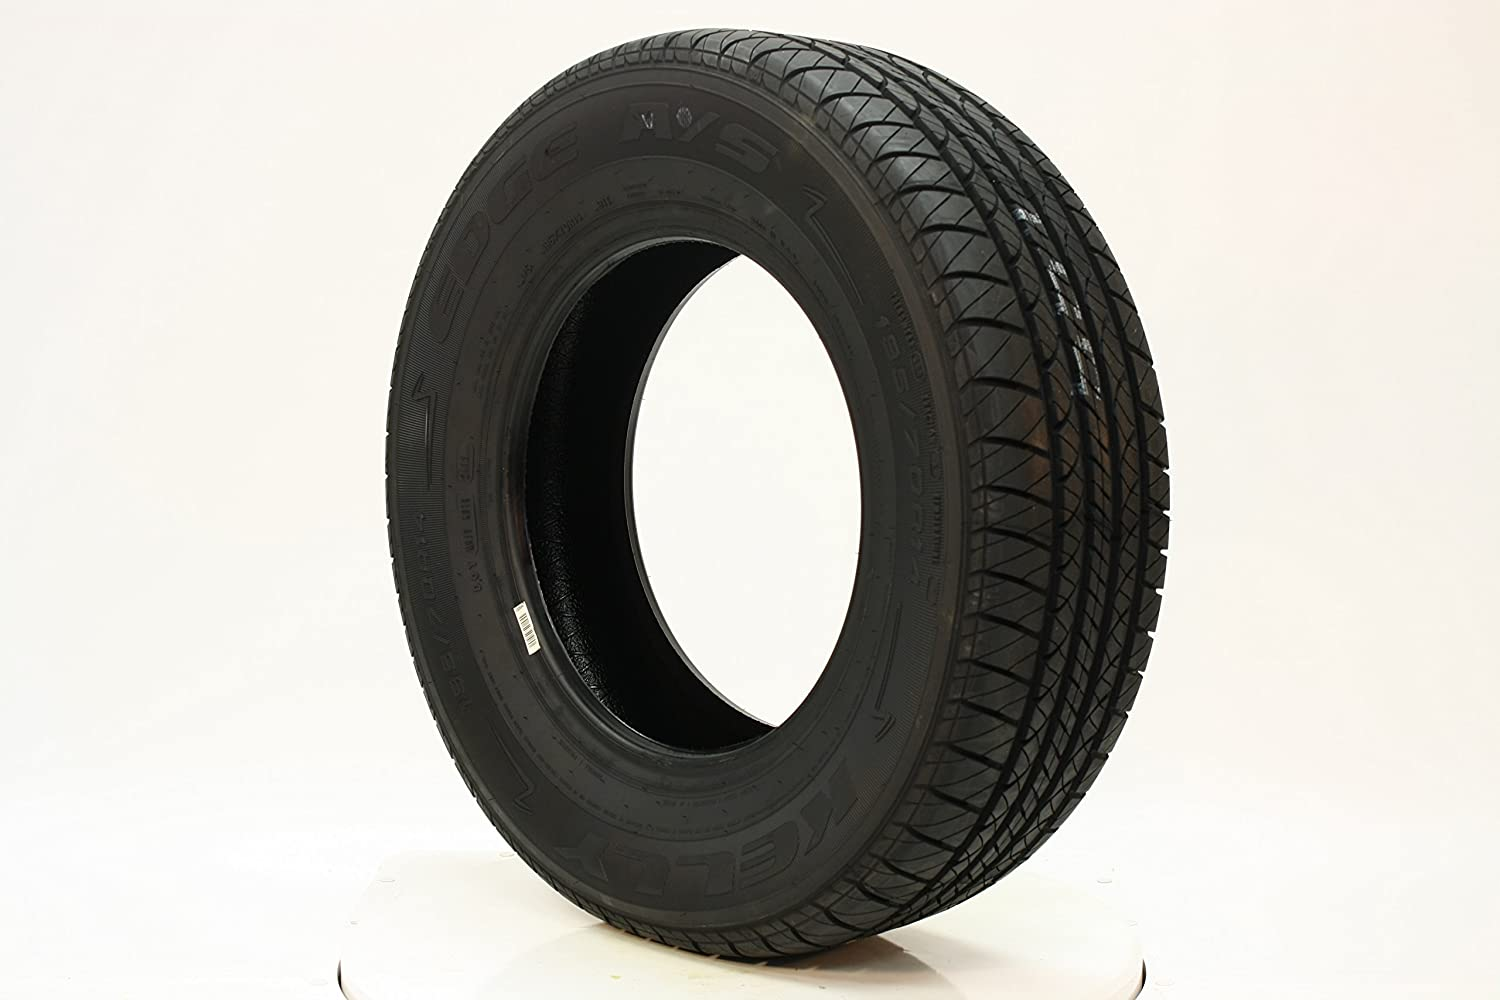 kelly edge tires review